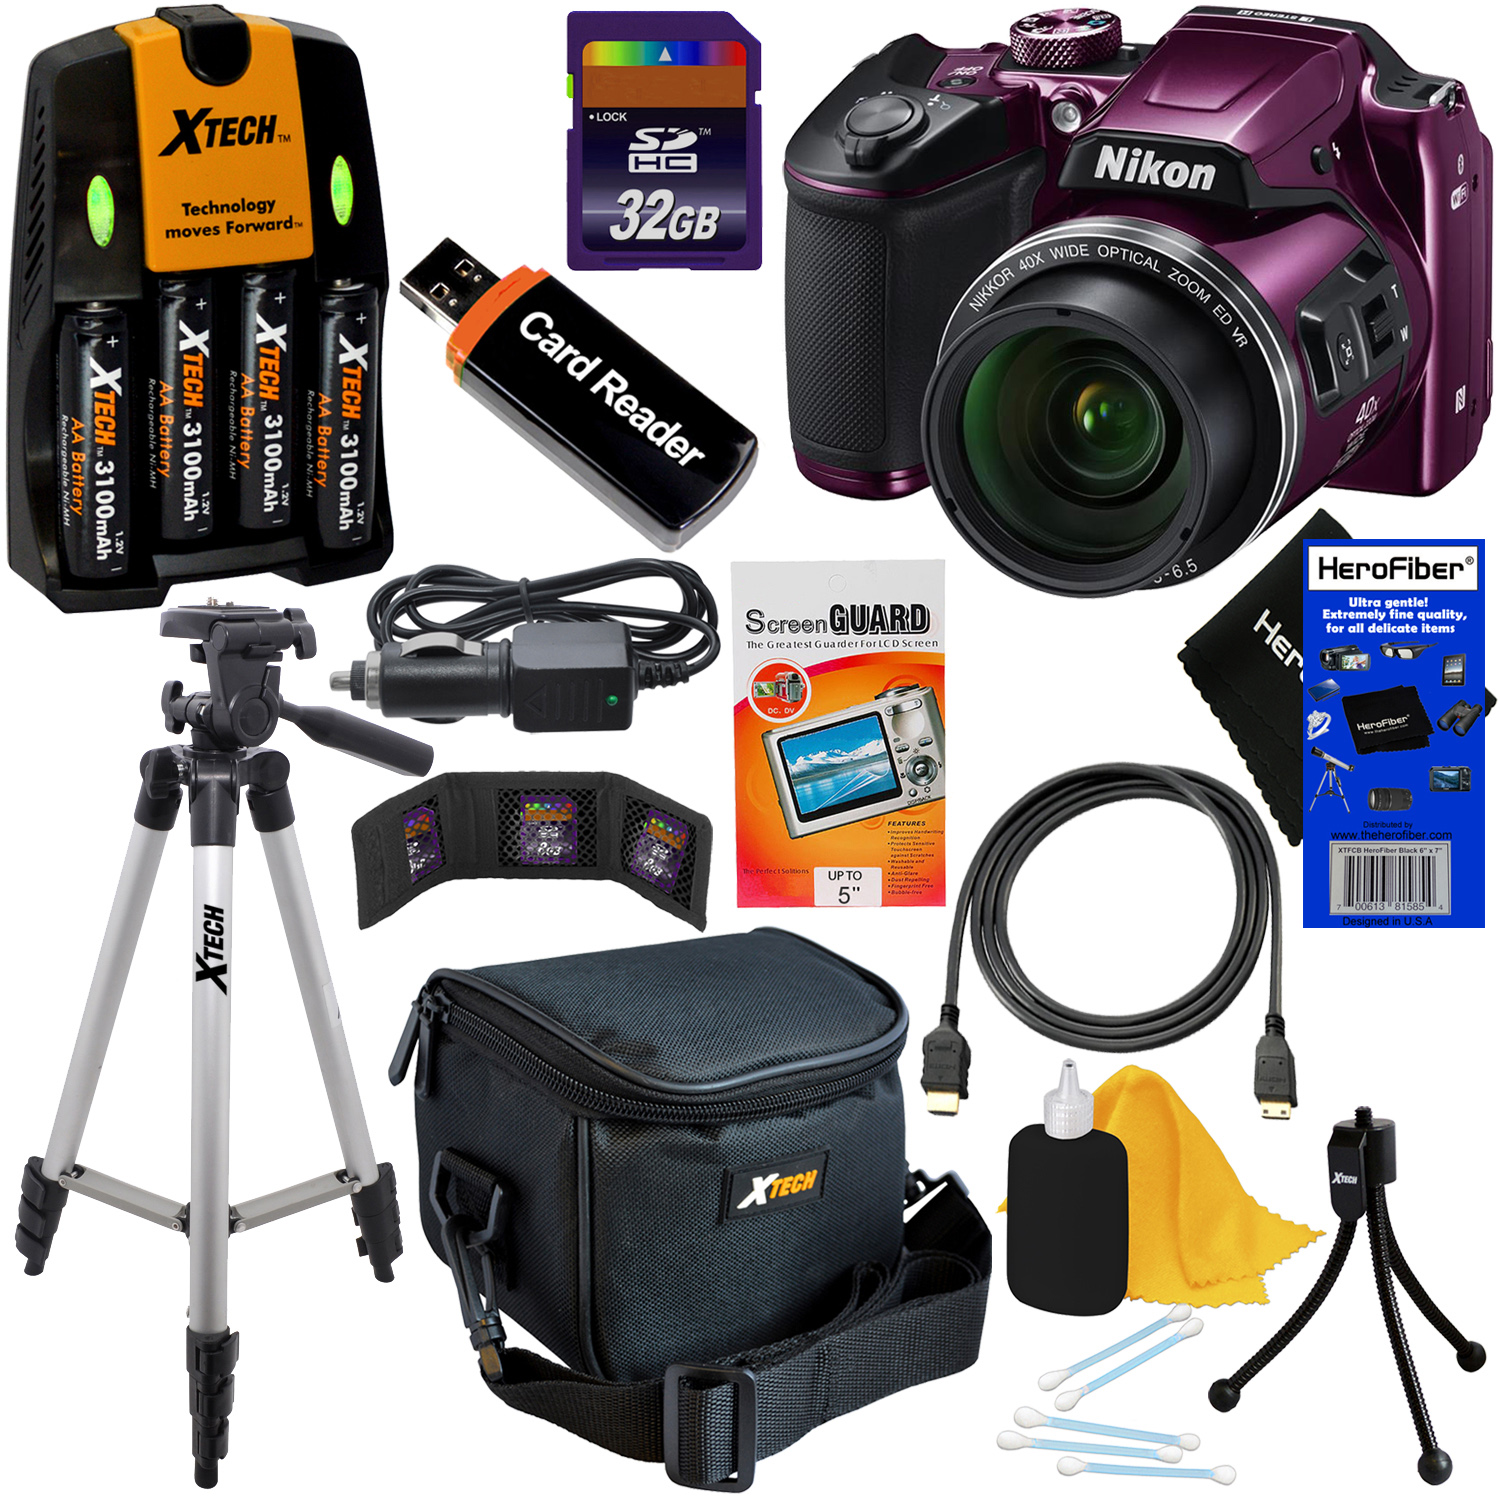 Nikon COOLPIX B500 Wi-Fi, NFC Digital Camera w/40x Zoom & HD Video (Plum) + 4 AA Batteries with Charger + 10pc 32GB Dlx Accessory Kit w/ HeroFiber Cleaning Cloth